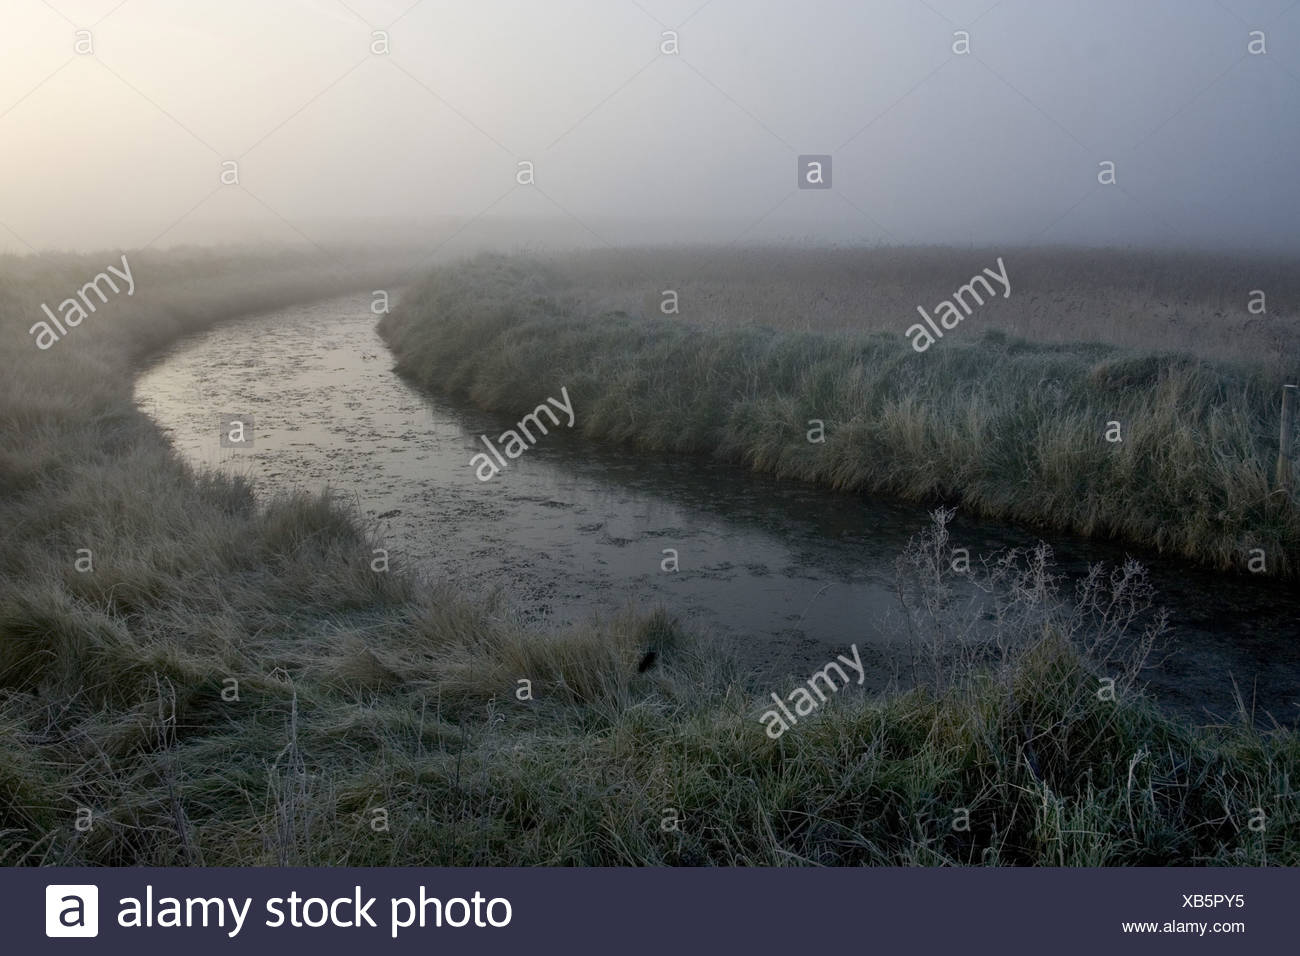 Borrow Pits Stock Photos & Borrow Pits Stock Images - Alamy